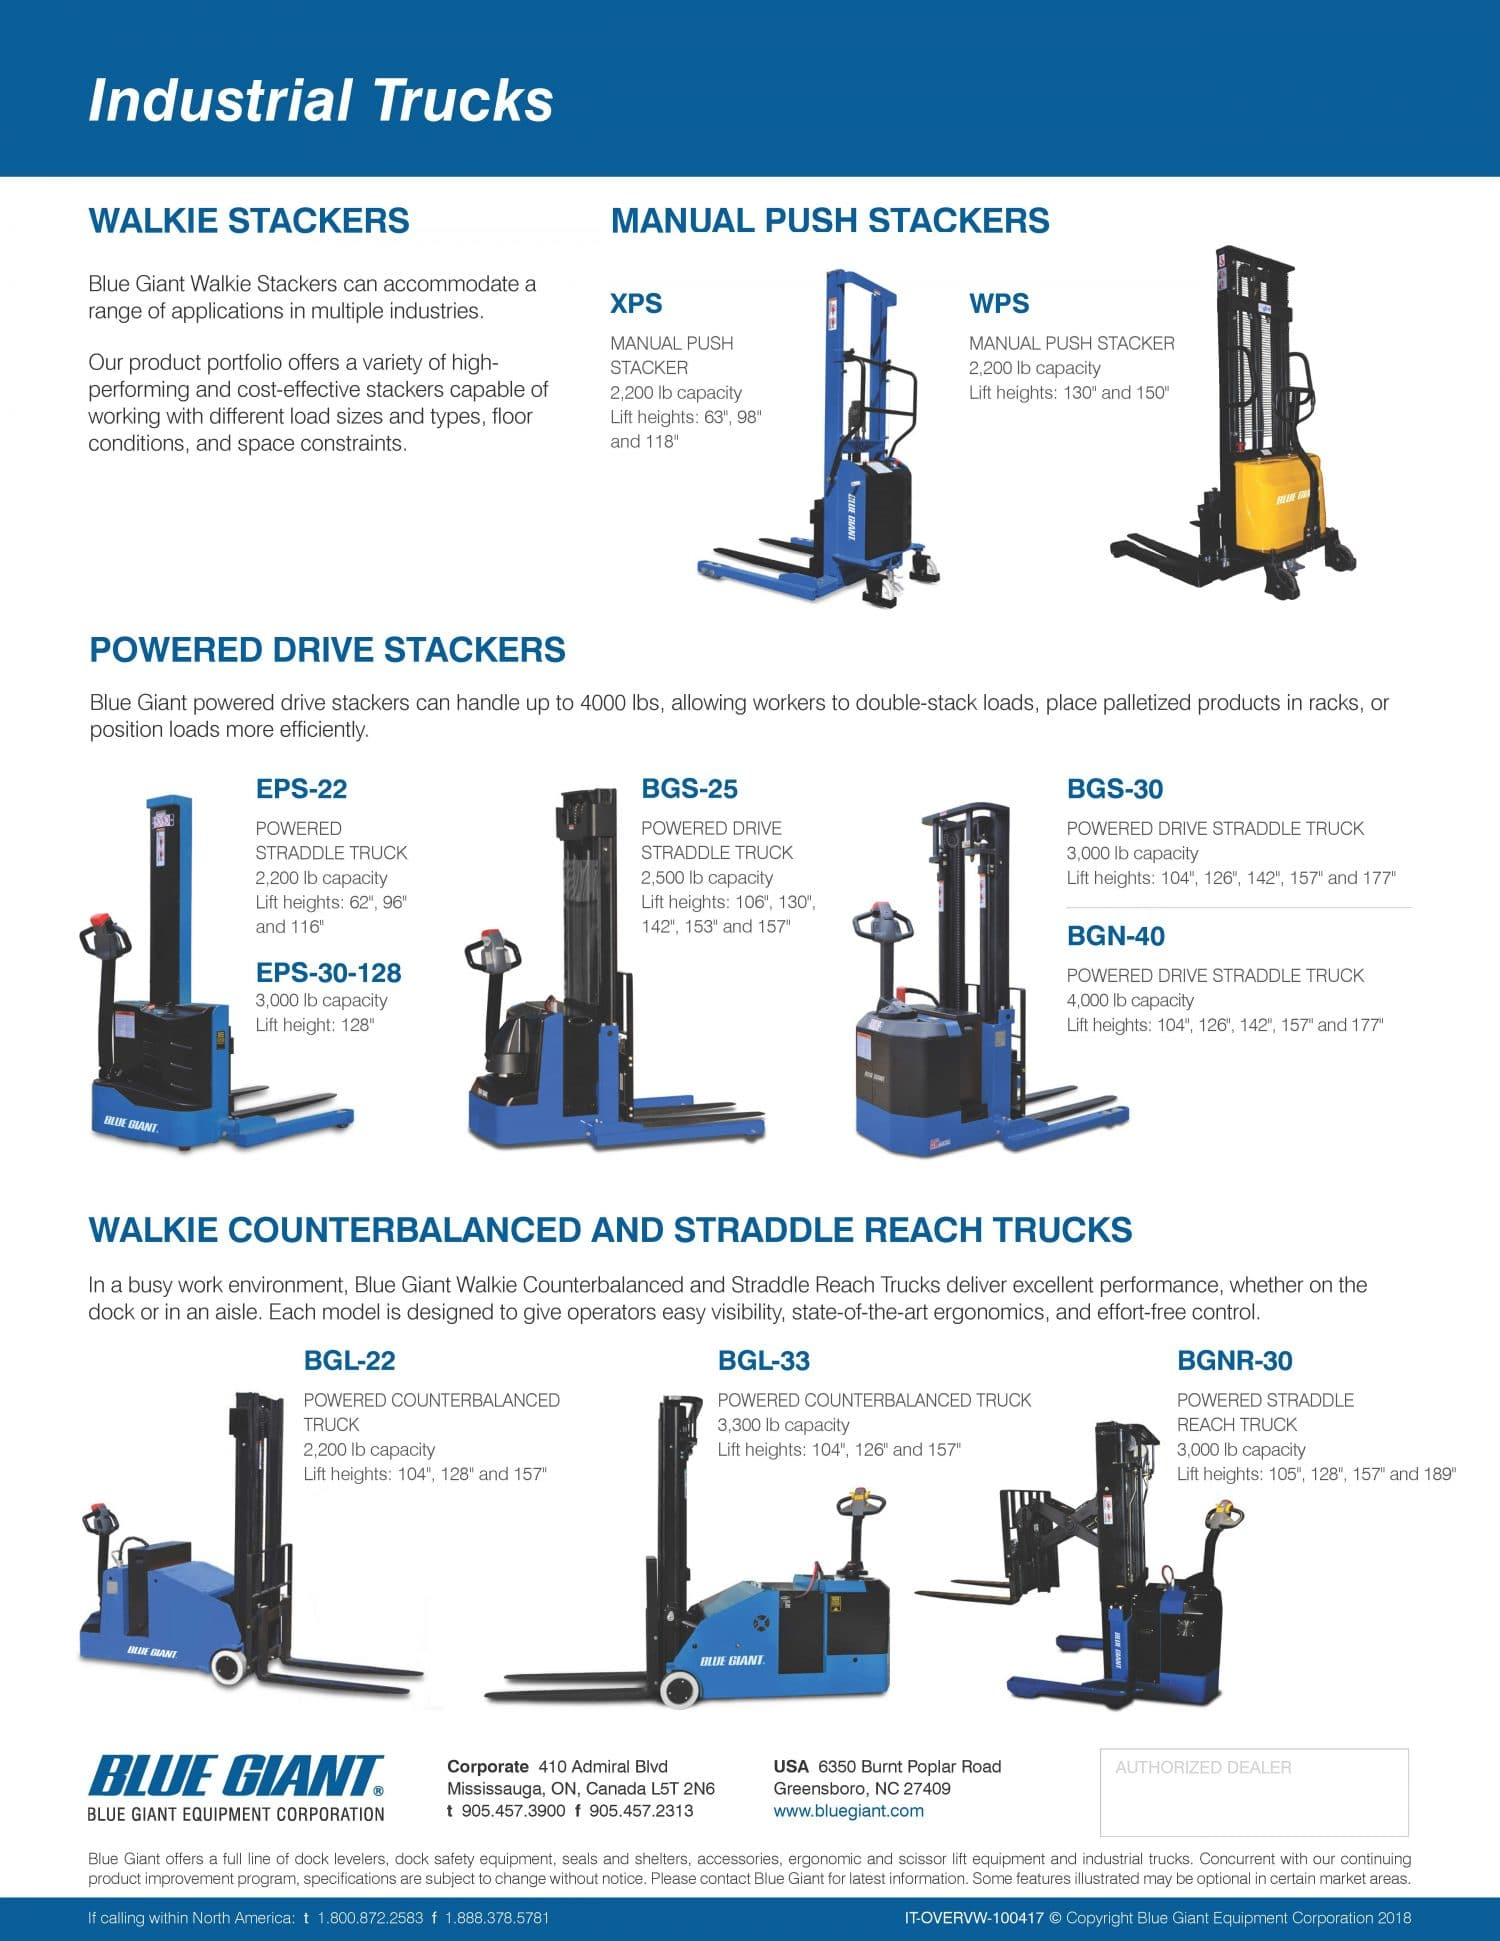 Walkie Stackers, Manual Push Stackers, Powered Drive Stackers